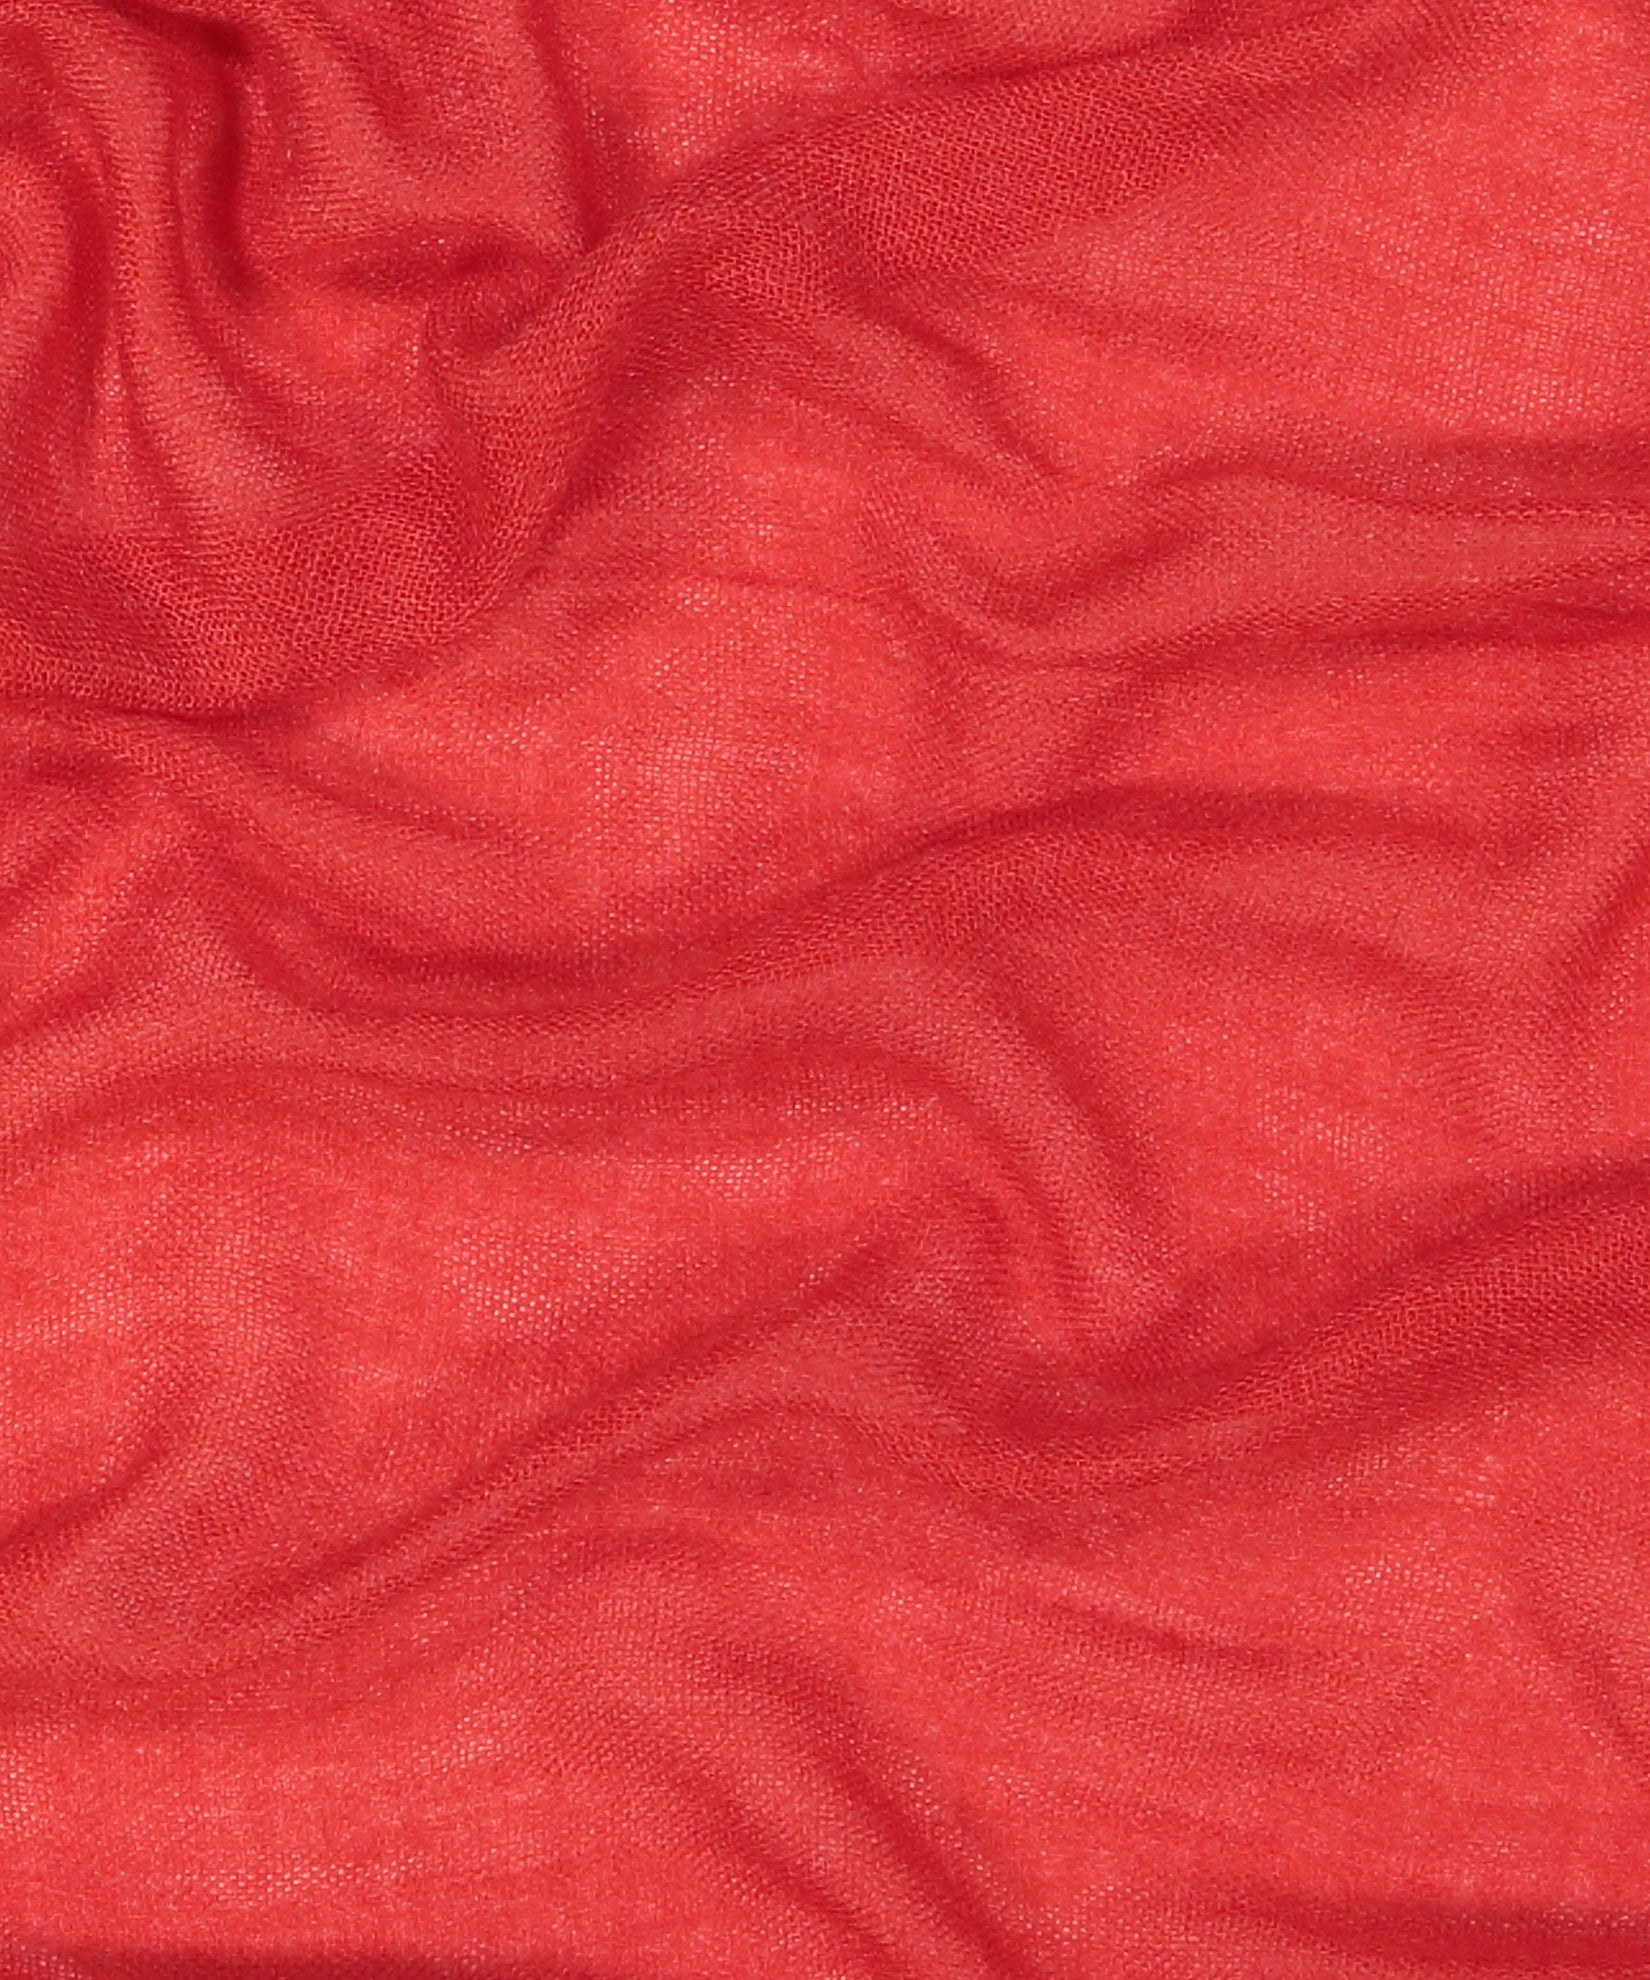 Ruby Red - Solid Oblong